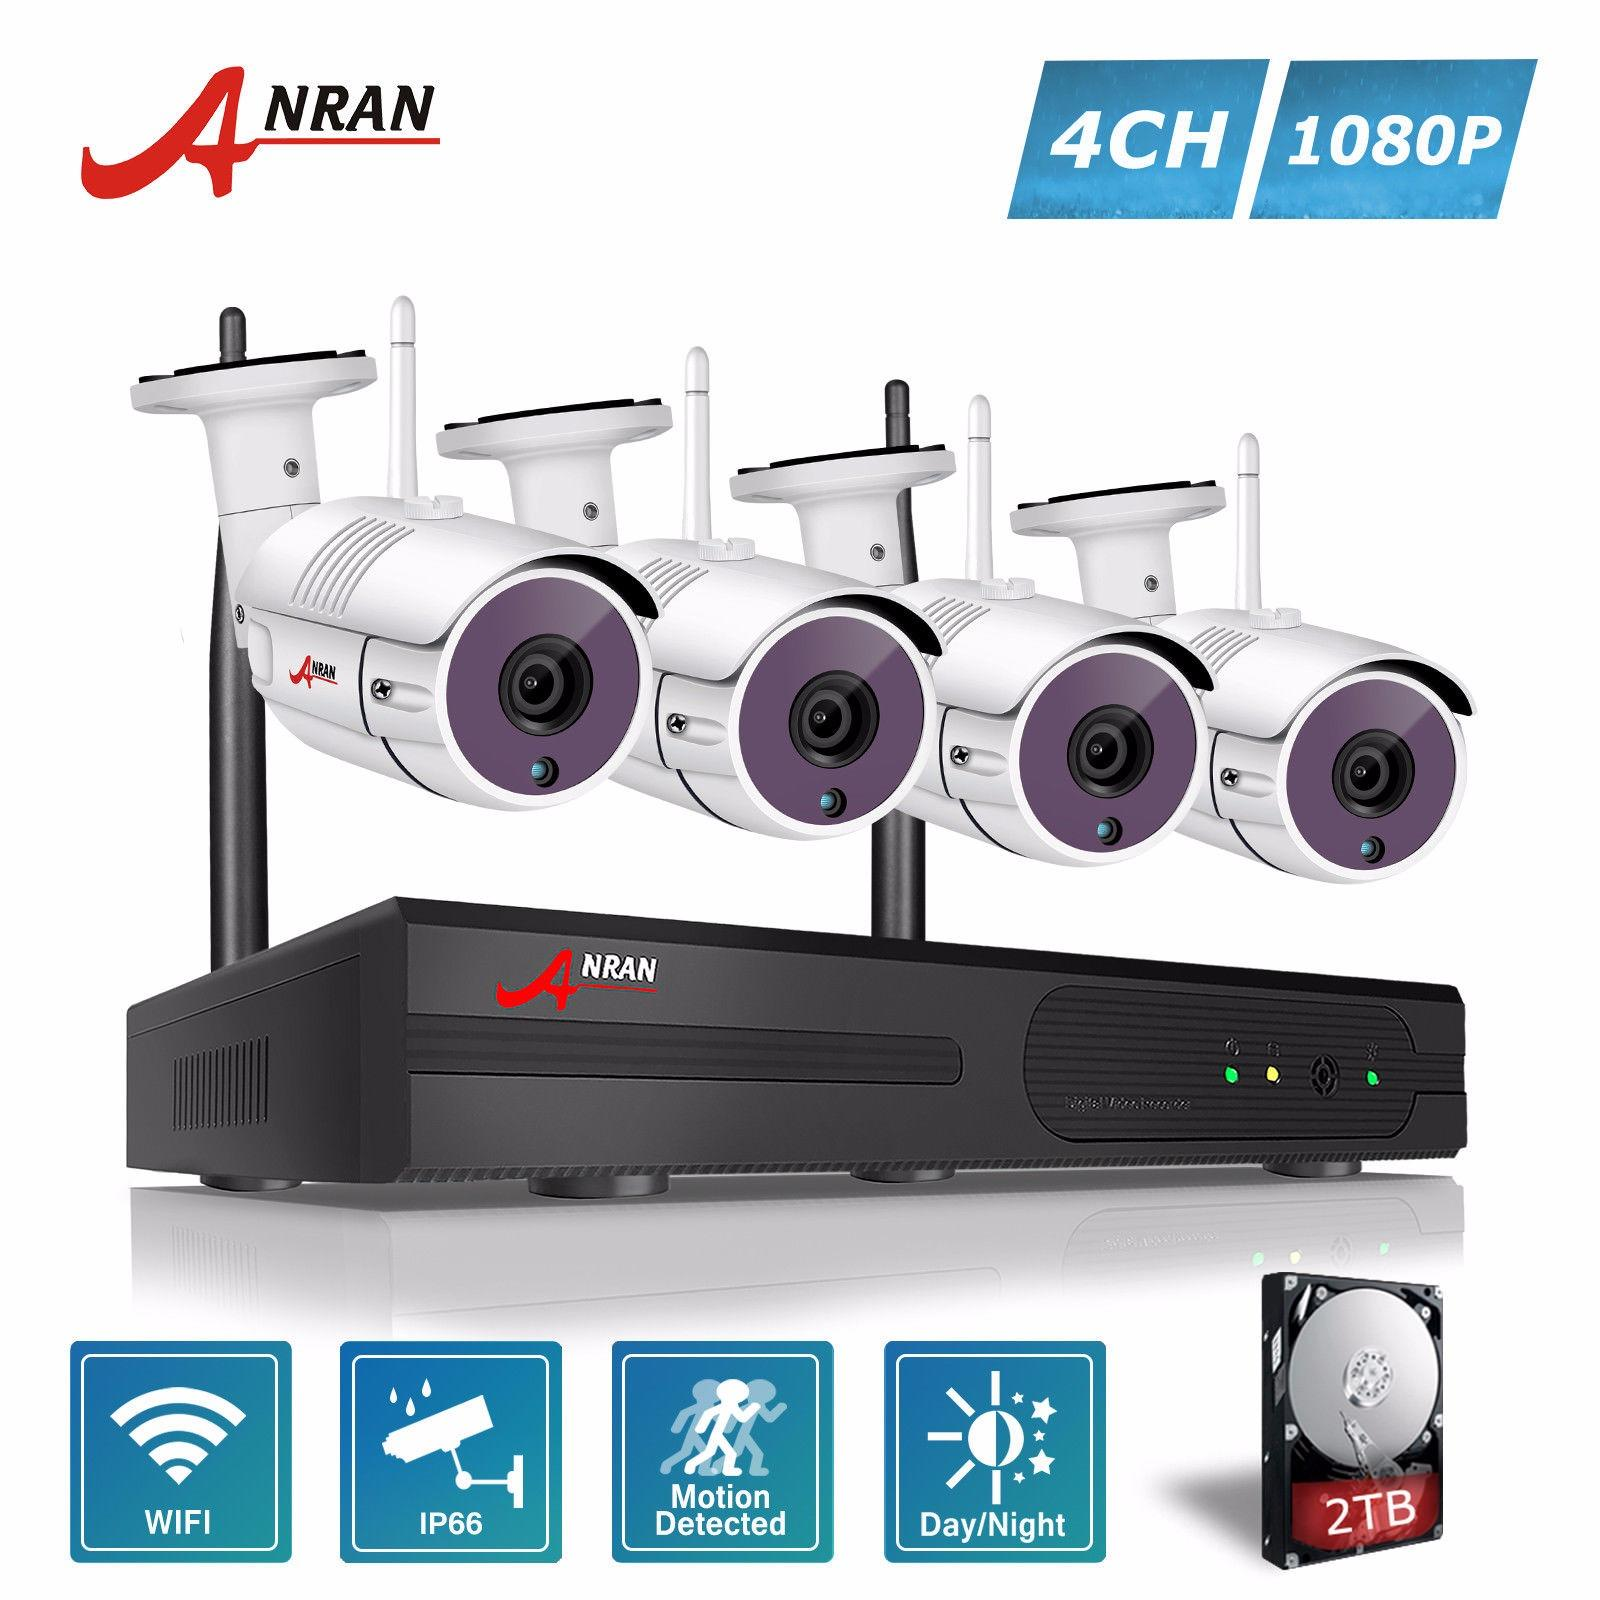 Harga Anran 4Ch Wireless Nvr Cctv Kit P2P 1080P Hd Outdoor Wifi Mini Ip Camera 36Ir Security Surveillance System Anran Tiongkok